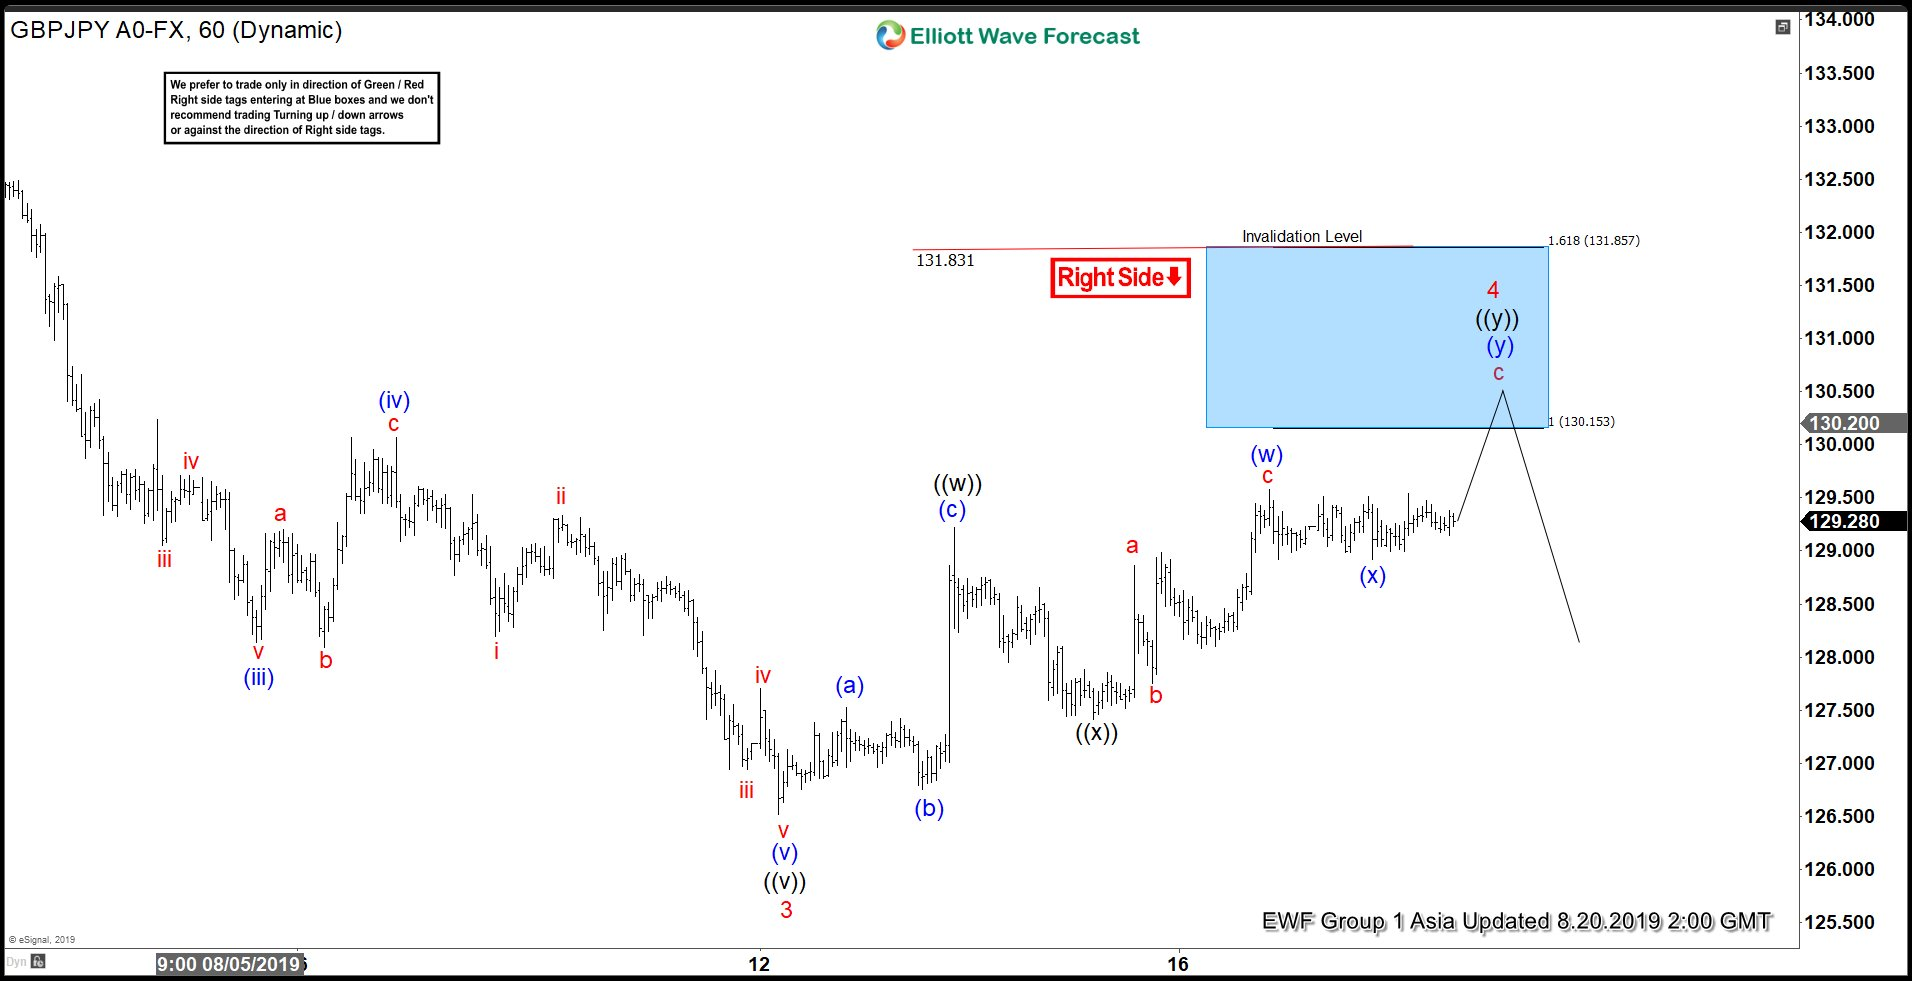 Elliott Wave View: GBPJPY Recovery Nearing Completion